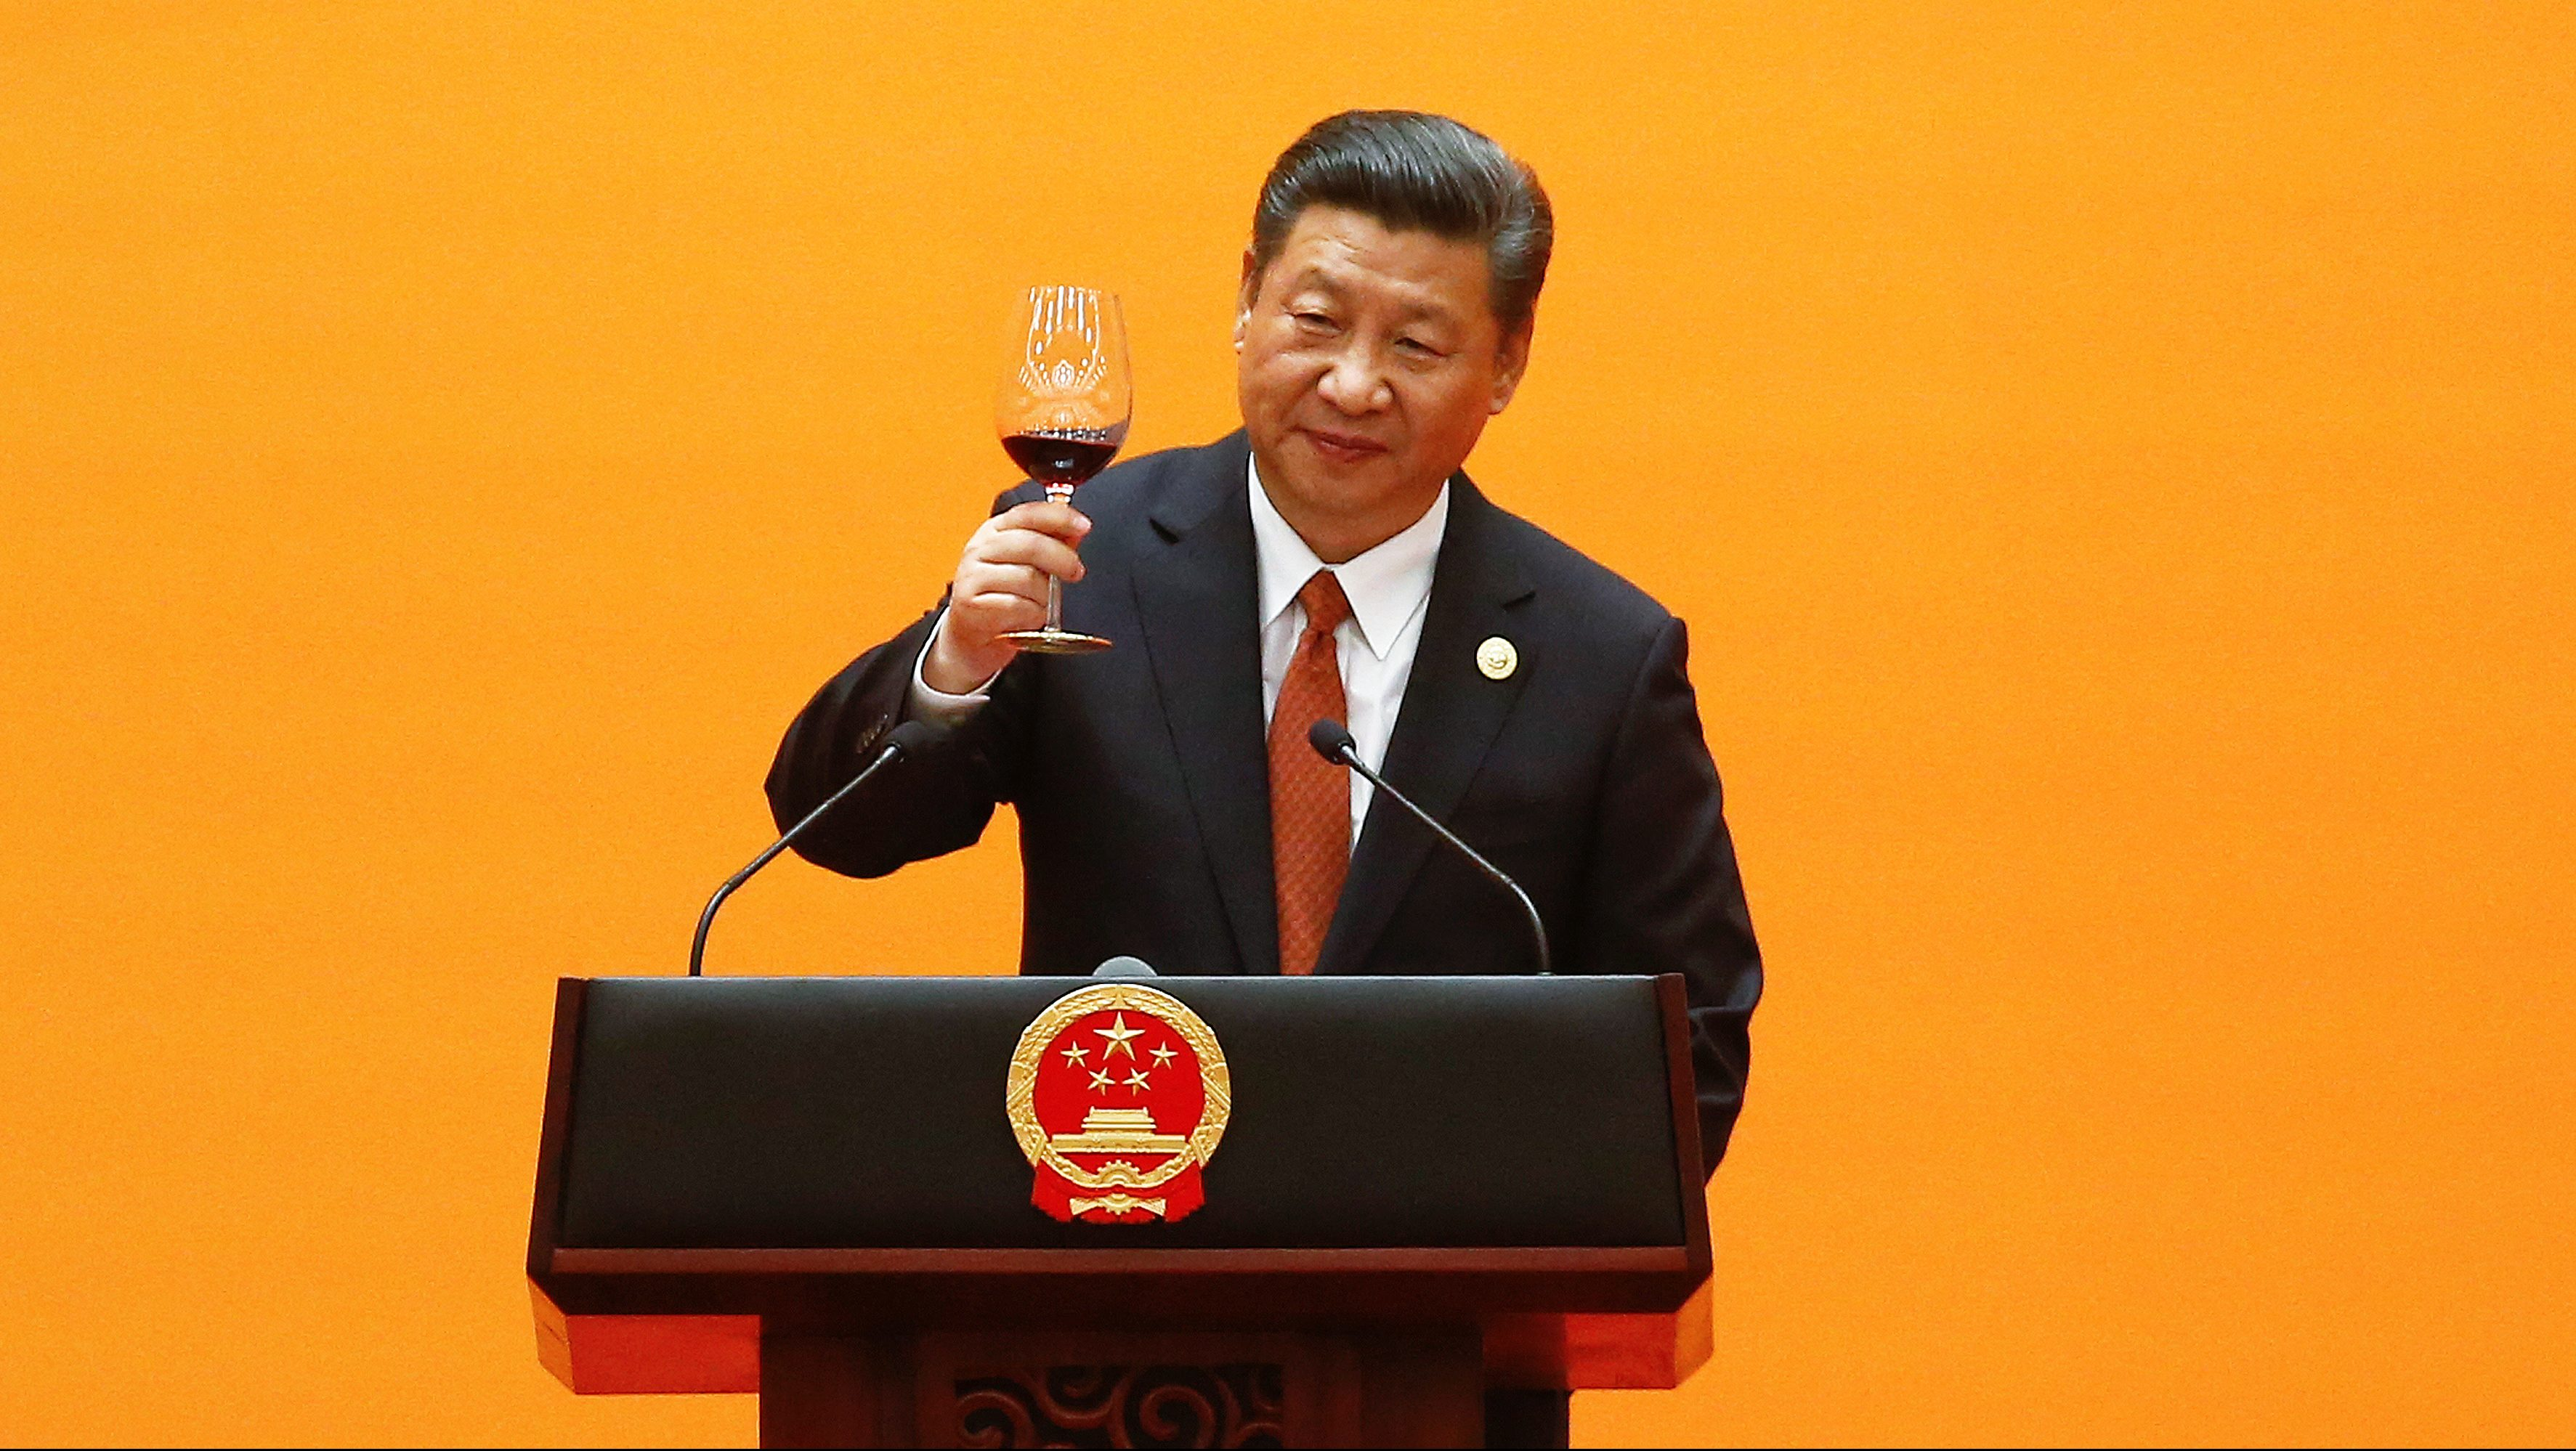 Chinese President Xi Jinping makes a toast at the beginning of the welcoming banquet at the Great Hall of the People during the first day of the Belt and Road Forum in Beijing, China, May 14, 2017.